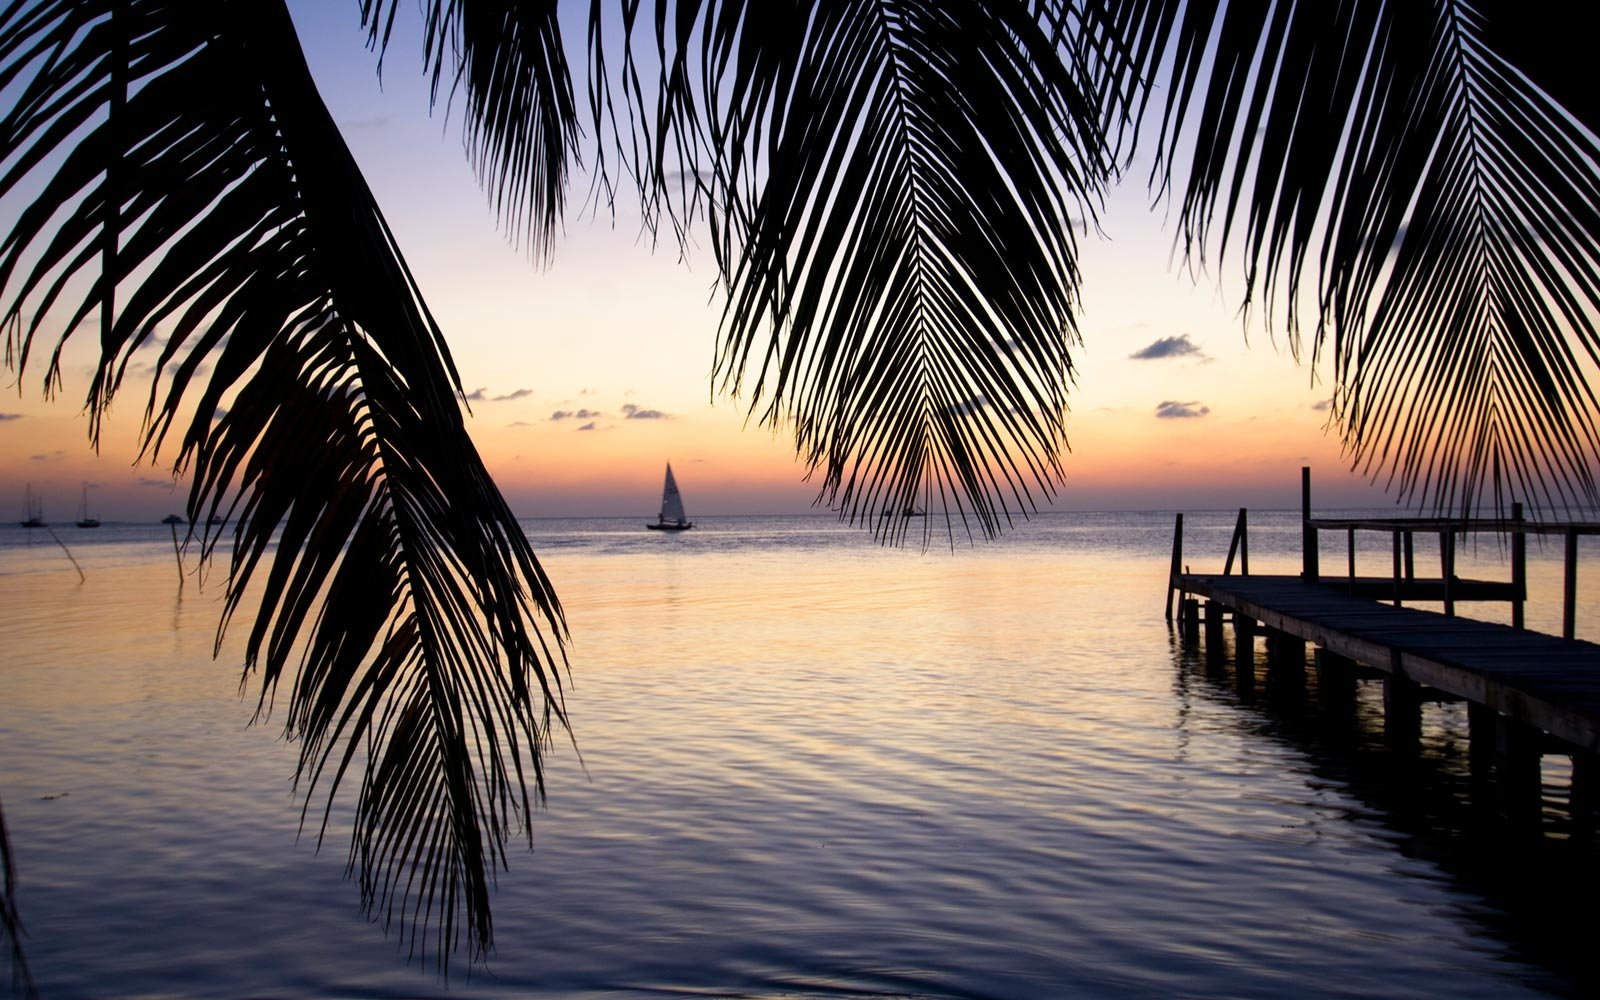 No. 15 Caye Caulker, Belize